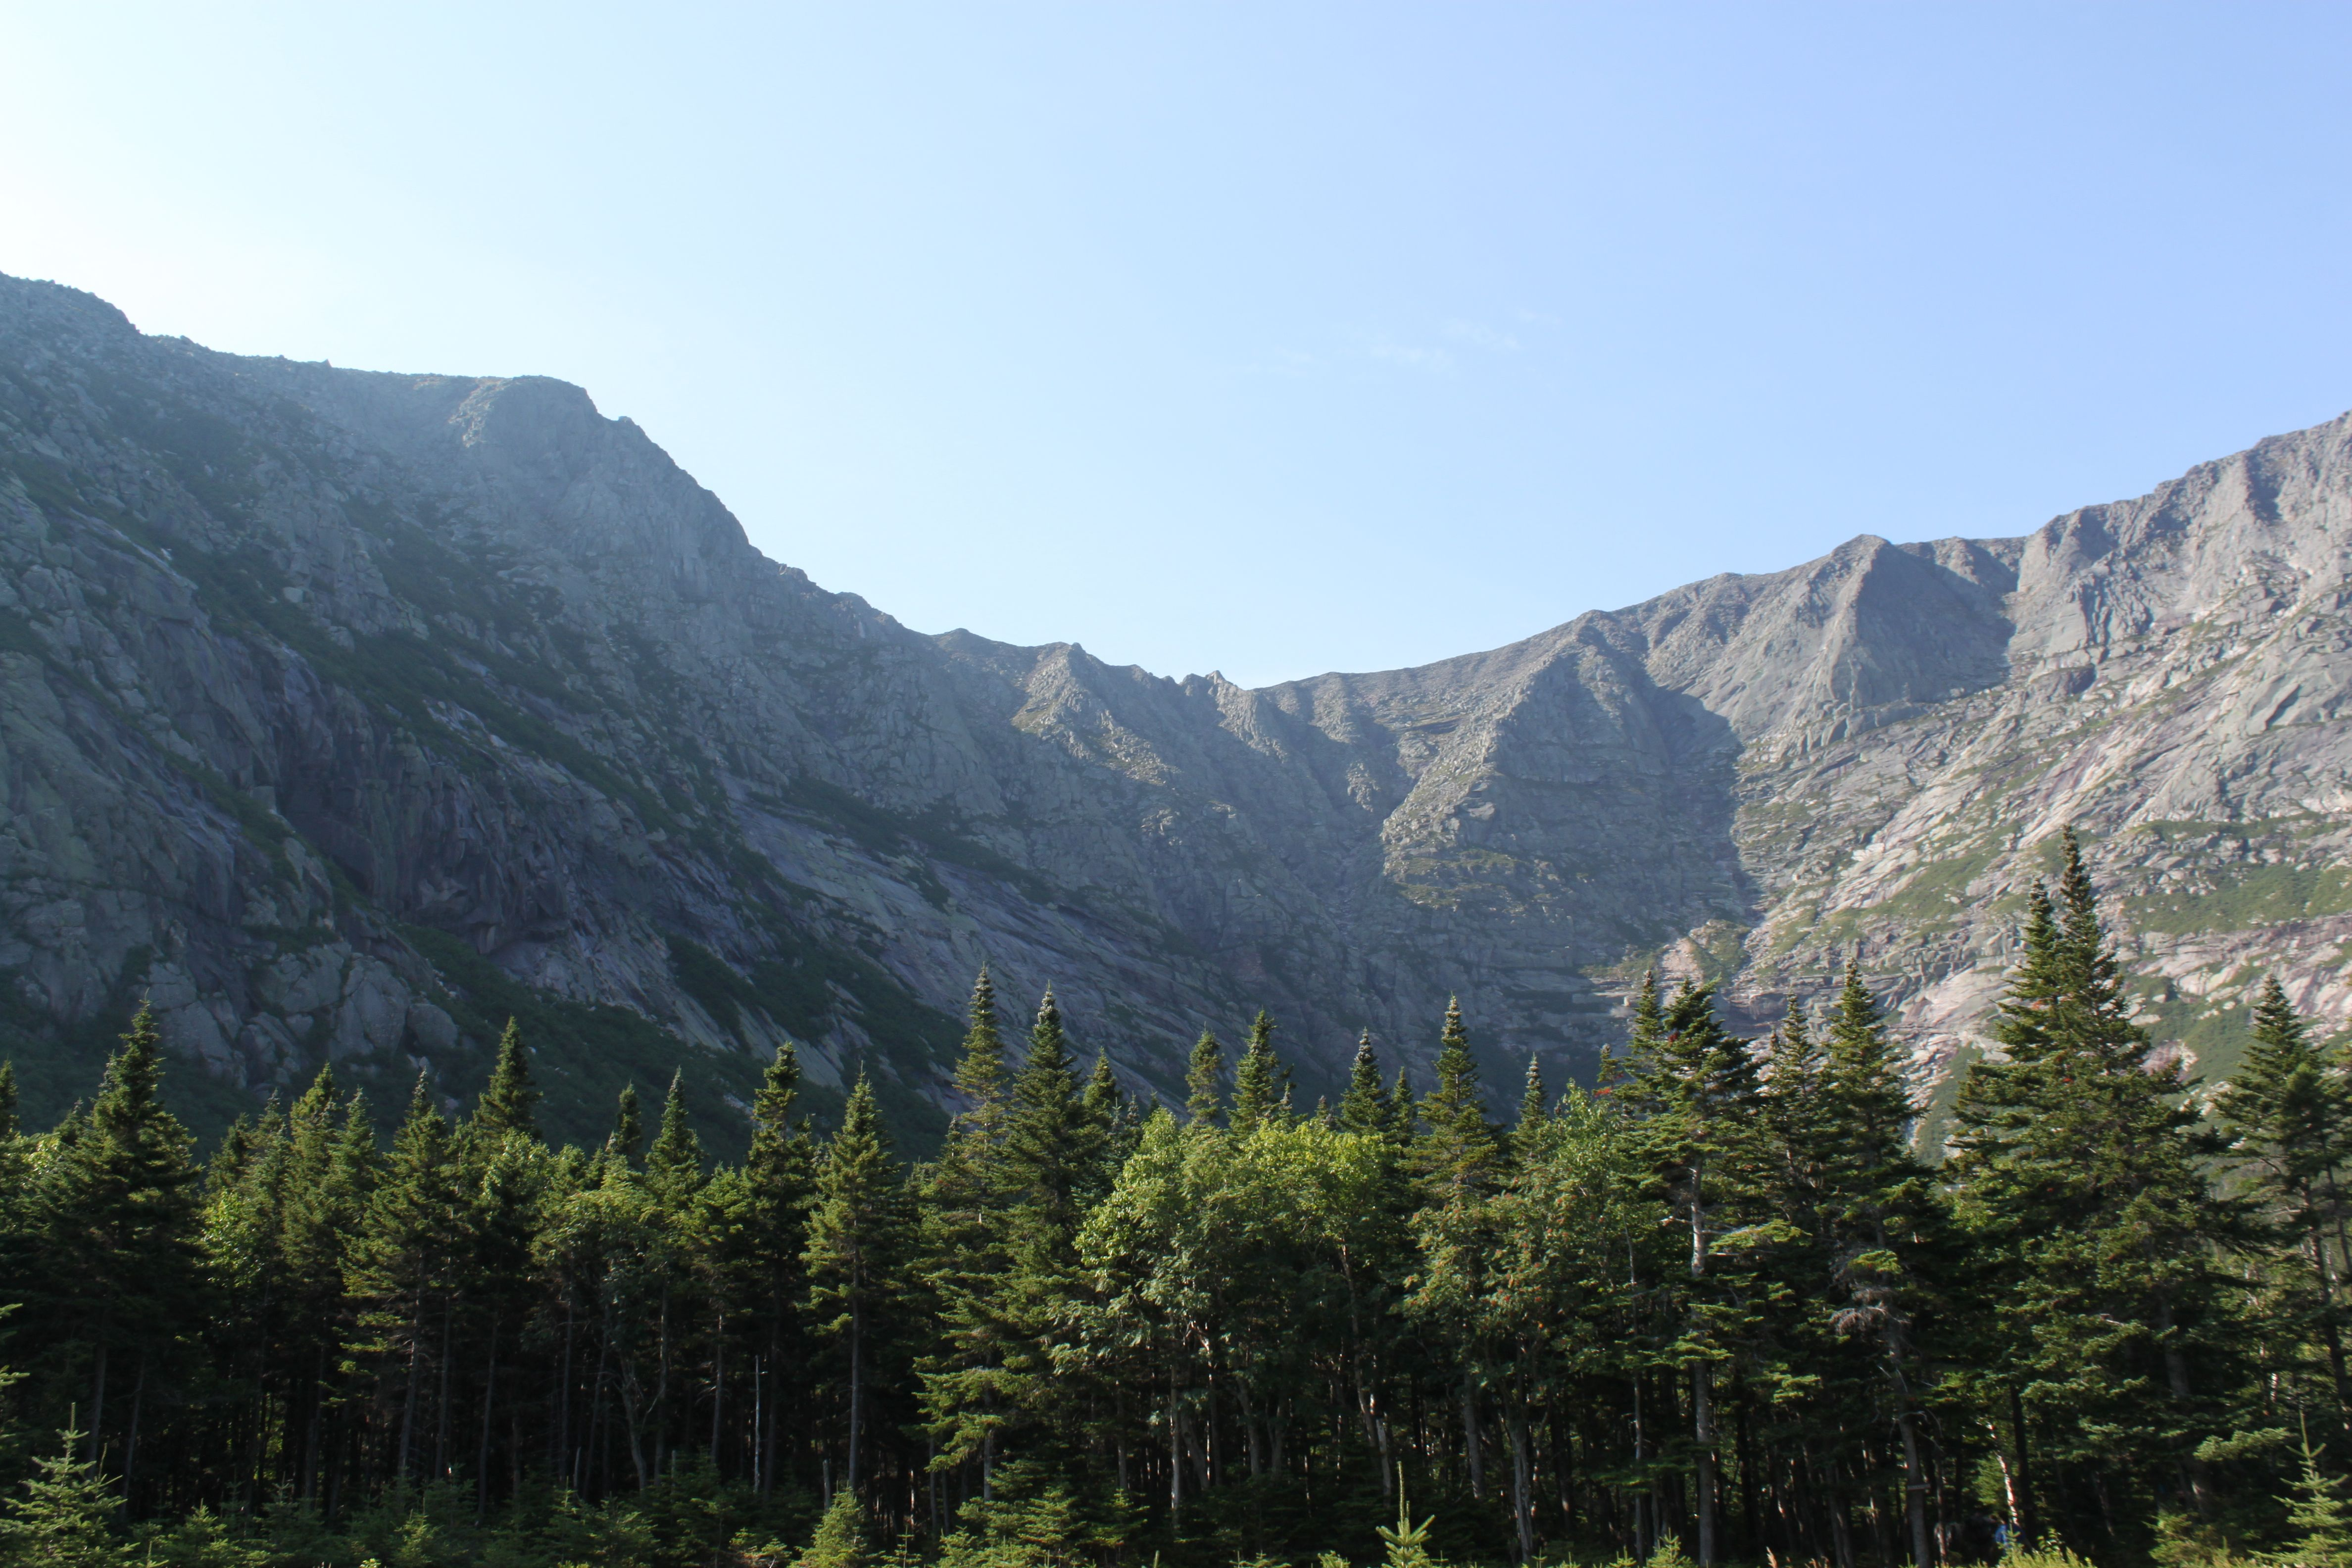 Mount Katahdin as seen from Chimney Pond Trail on Sunday, Aug. 14, 2011. Chimney Pond Trailhead is at Roaring Brook Campground in Baxter State Park.